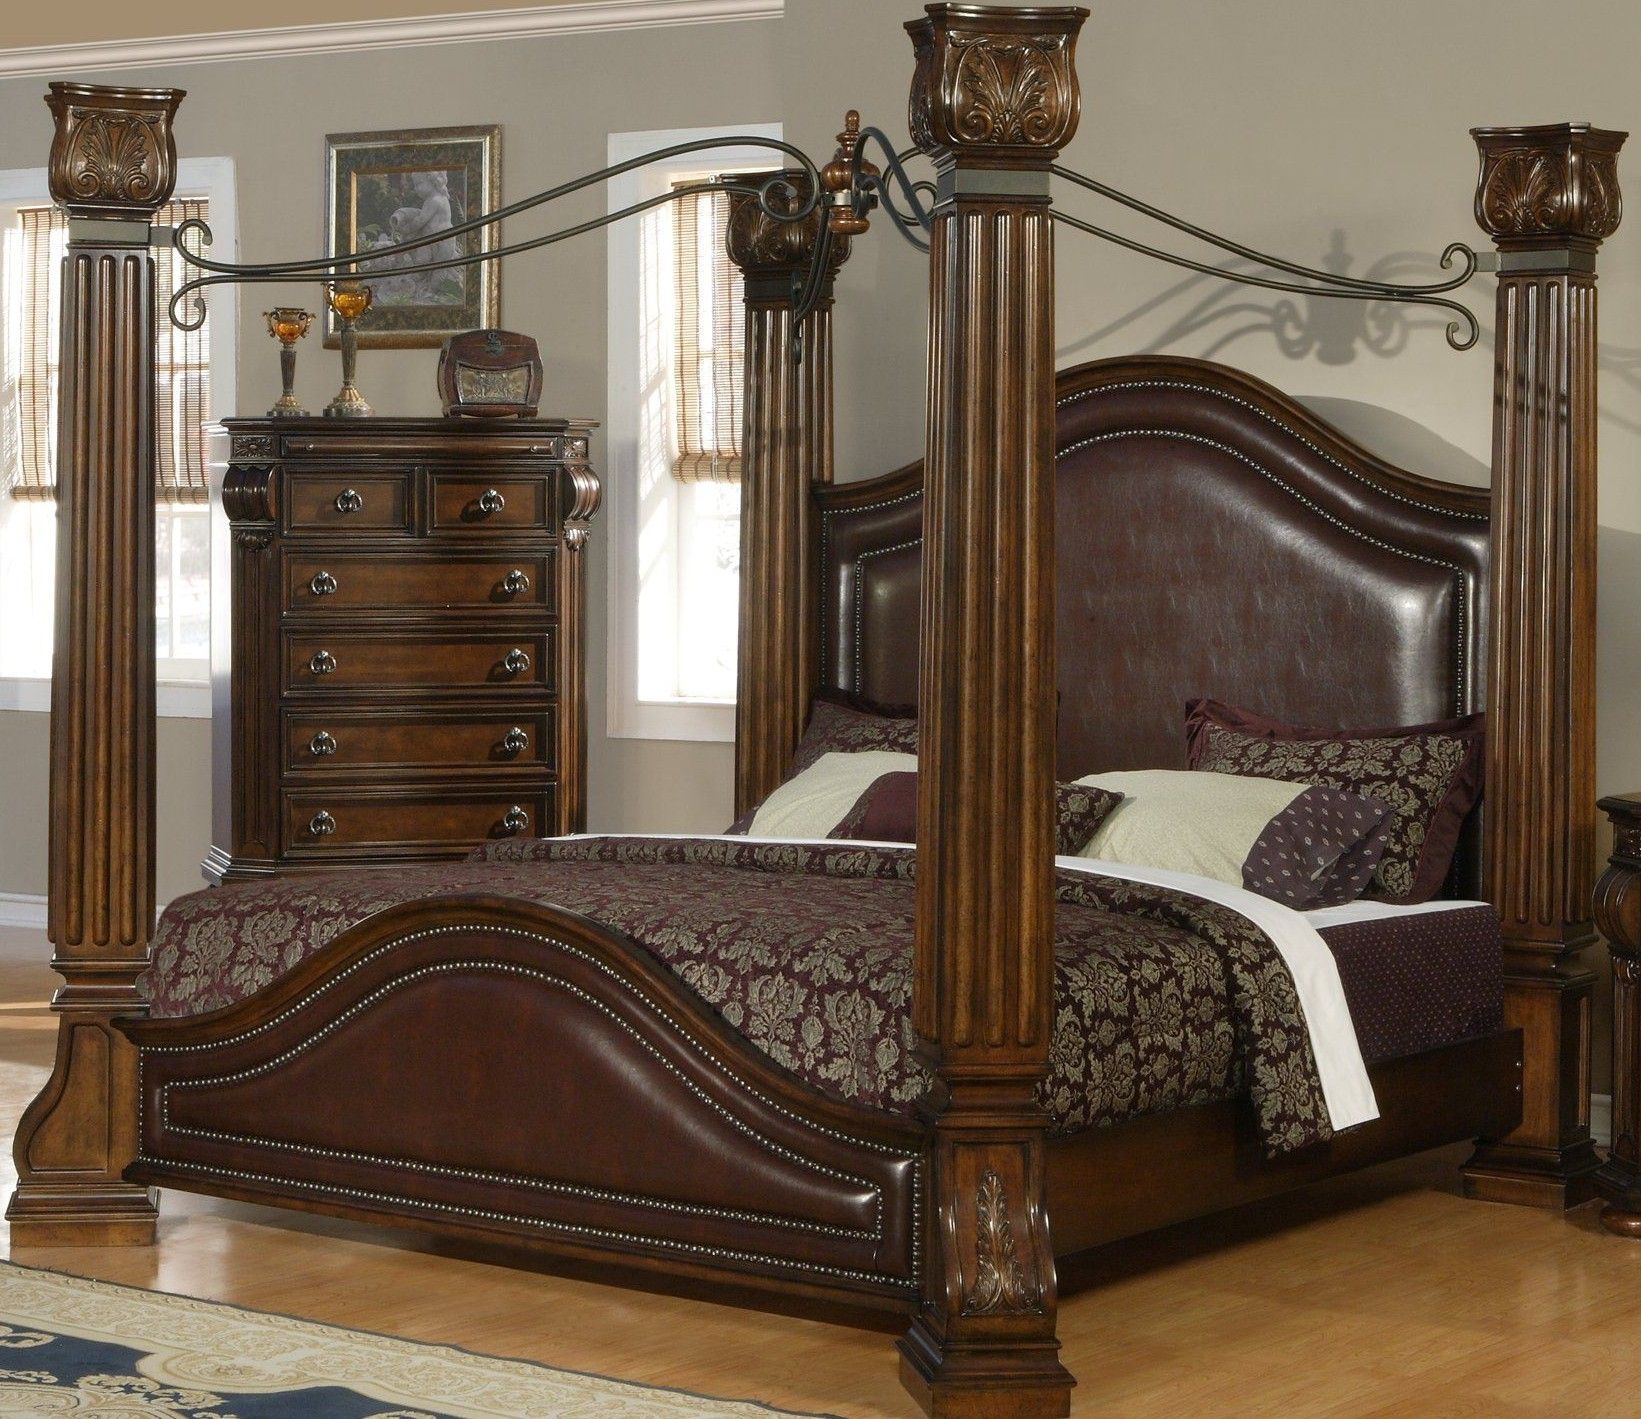 Lovely and classy Four Poster with very sturdy posts